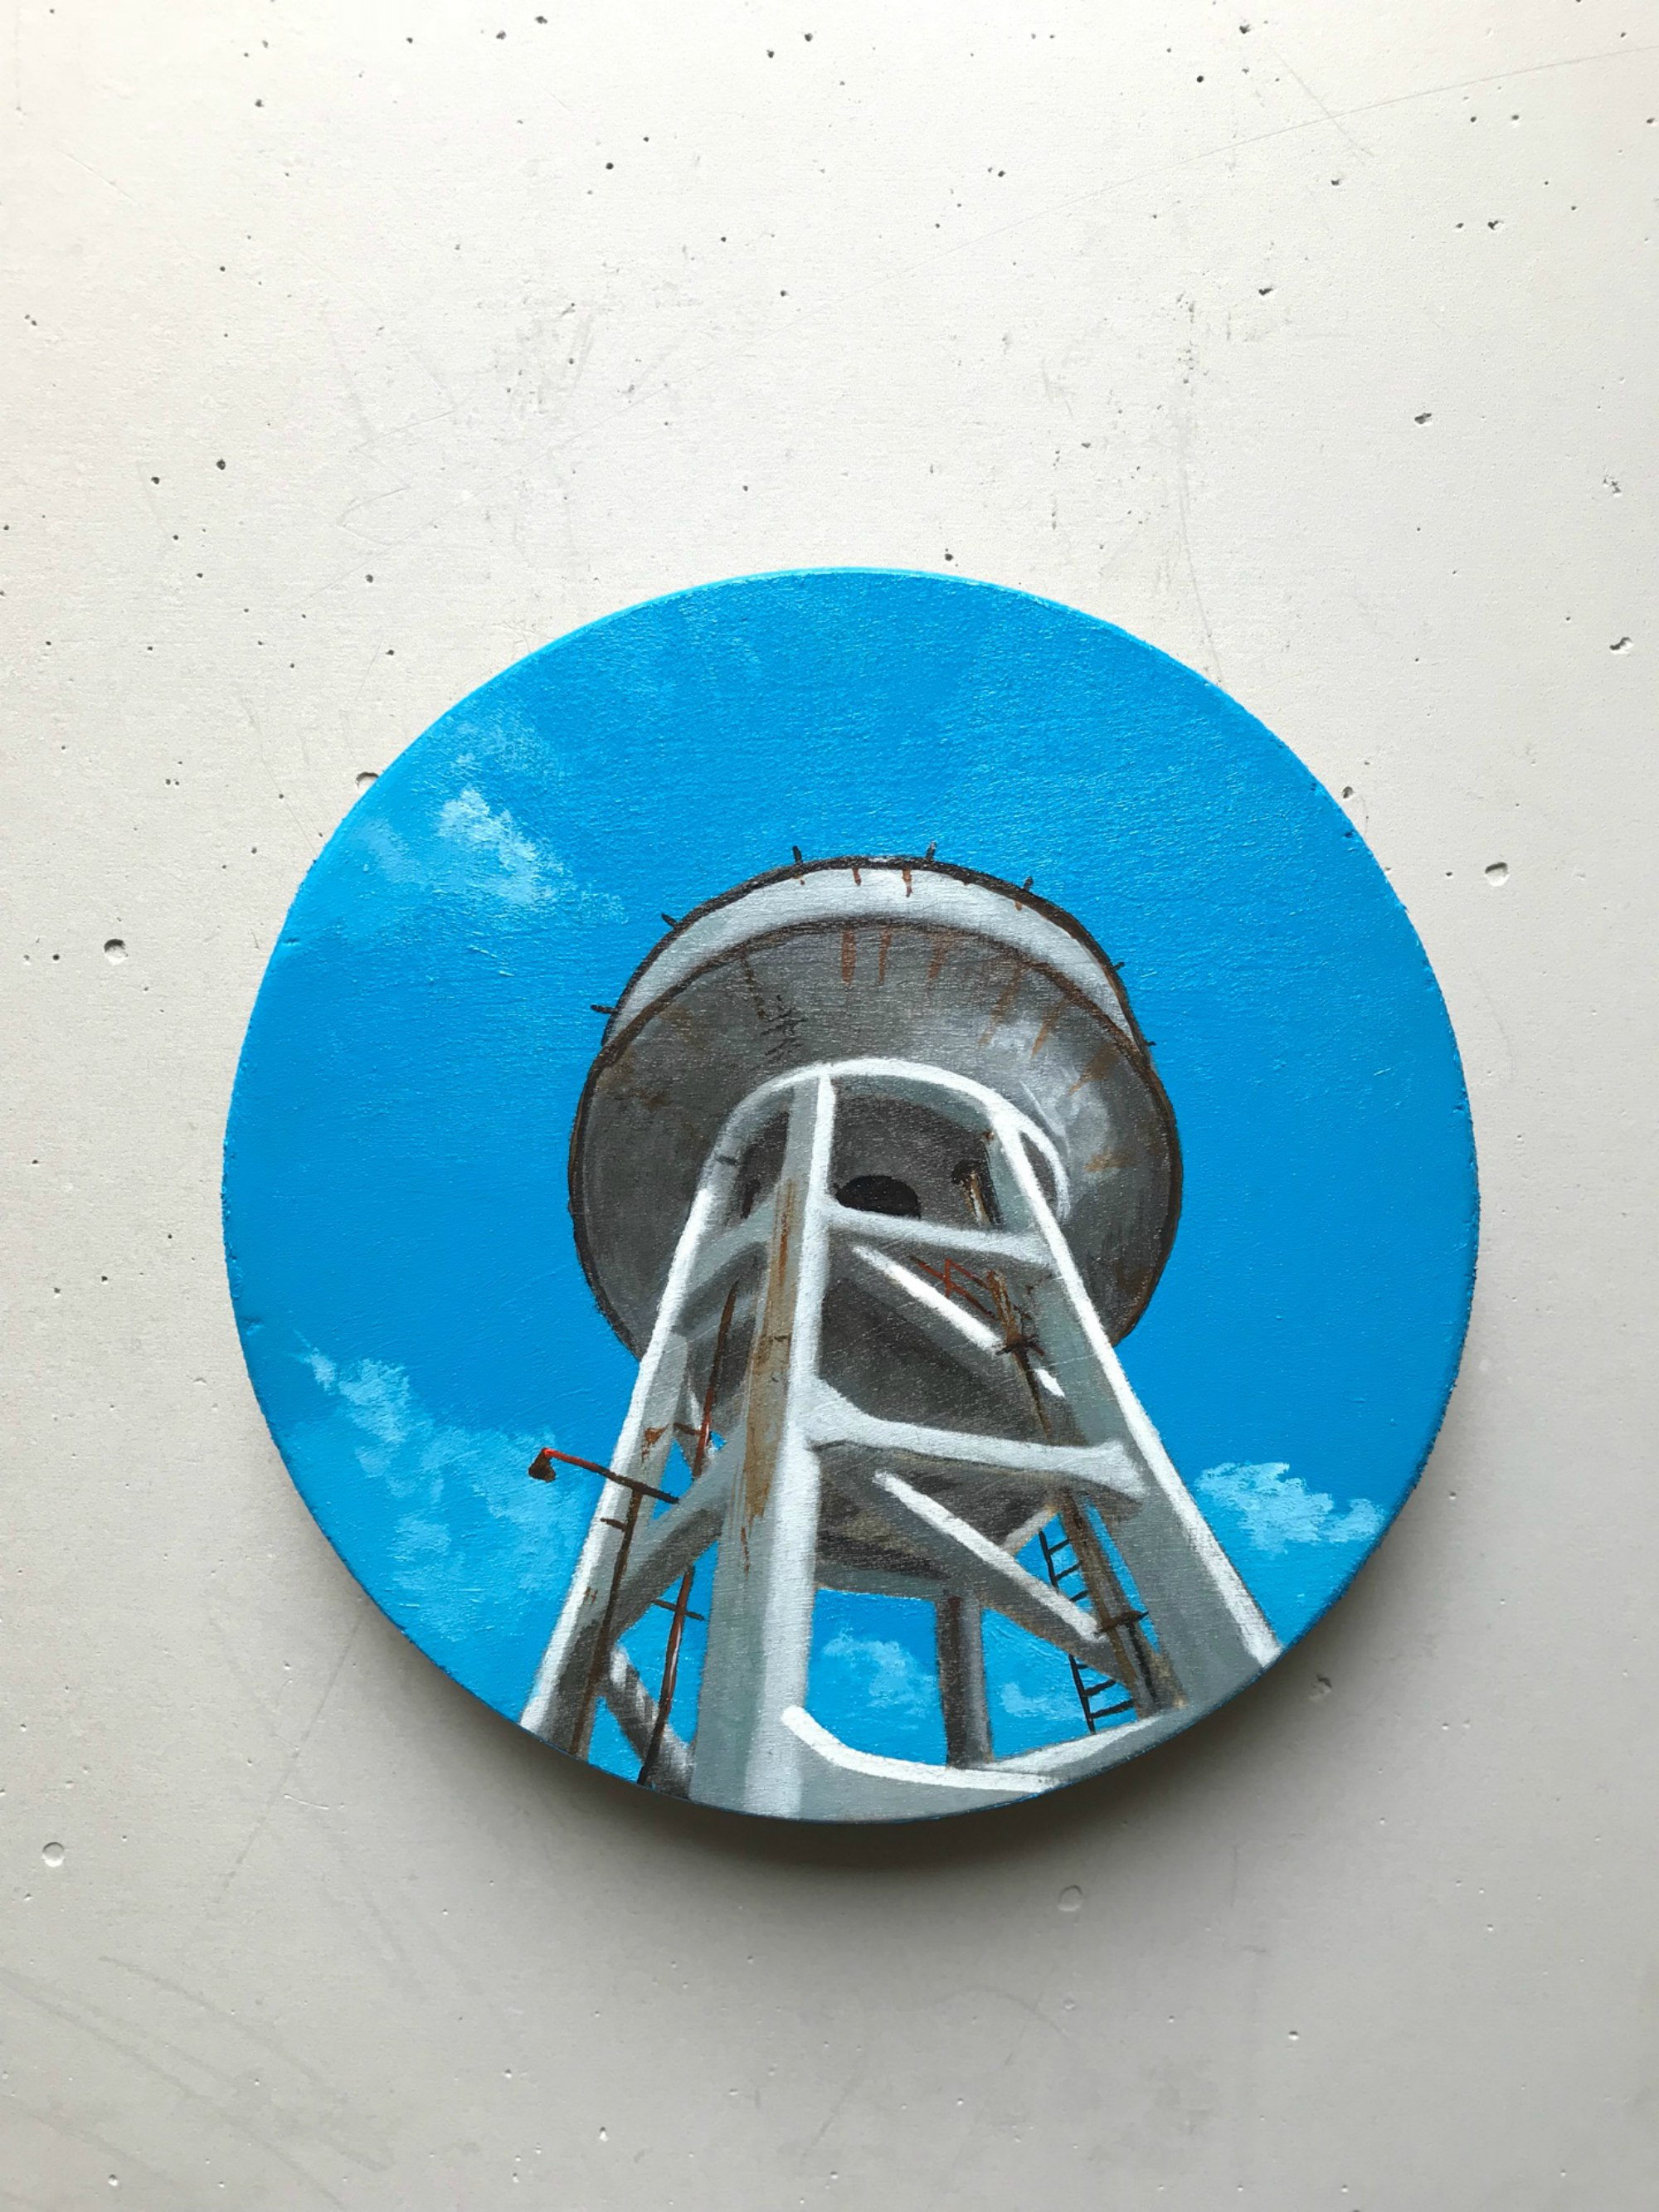 Artwork on Wood Canvas by Mario Loprete